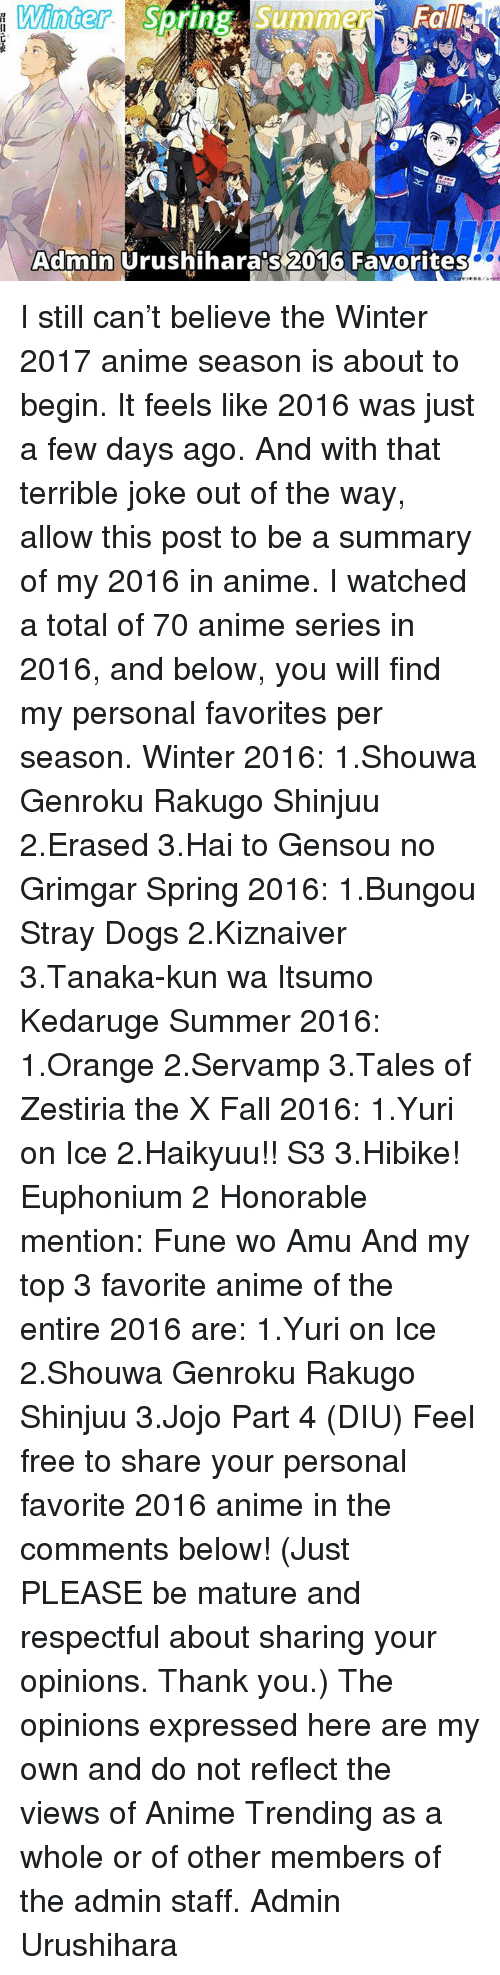 terrible joke: Winter  Su  Summer  Spring Admin  Urushiharaps 2016 Favorites I still can't believe the Winter 2017 anime season is about to begin. It feels like 2016 was just a few days ago.  And with that terrible joke out of the way, allow this post to be a summary of my 2016 in anime. I watched a total of 70 anime series in 2016, and below, you will find my personal favorites per season.  Winter 2016: 1.Shouwa Genroku Rakugo Shinjuu 2.Erased 3.Hai to Gensou no Grimgar  Spring 2016: 1.Bungou Stray Dogs 2.Kiznaiver 3.Tanaka-kun wa Itsumo Kedaruge  Summer 2016: 1.Orange 2.Servamp 3.Tales of Zestiria the X  Fall 2016: 1.Yuri on Ice 2.Haikyuu!! S3 3.Hibike! Euphonium 2 Honorable mention: Fune wo Amu  And my top 3 favorite anime of the entire 2016 are: 1.Yuri on Ice 2.Shouwa Genroku Rakugo Shinjuu 3.Jojo Part 4 (DIU)  Feel free to share your personal favorite 2016 anime in the comments below! (Just PLEASE be mature and respectful about sharing your opinions. Thank you.)  The opinions expressed here are my own and do not reflect the views of Anime Trending as a whole or of other members of the admin staff.  Admin Urushihara